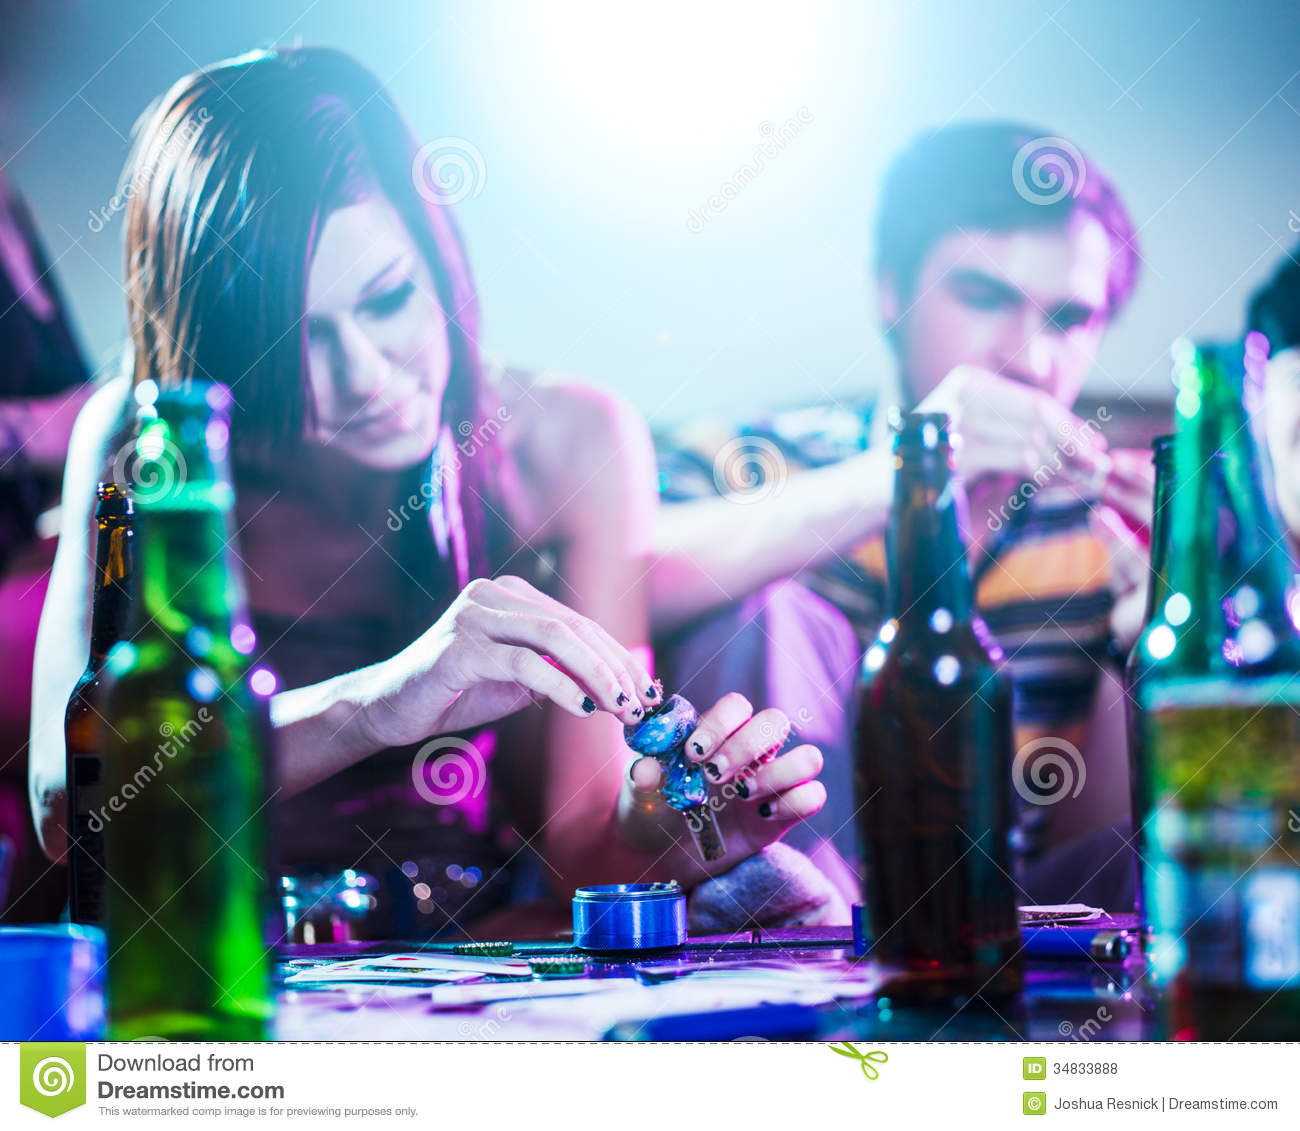 Drug Using Teens At House Party Stock Photo